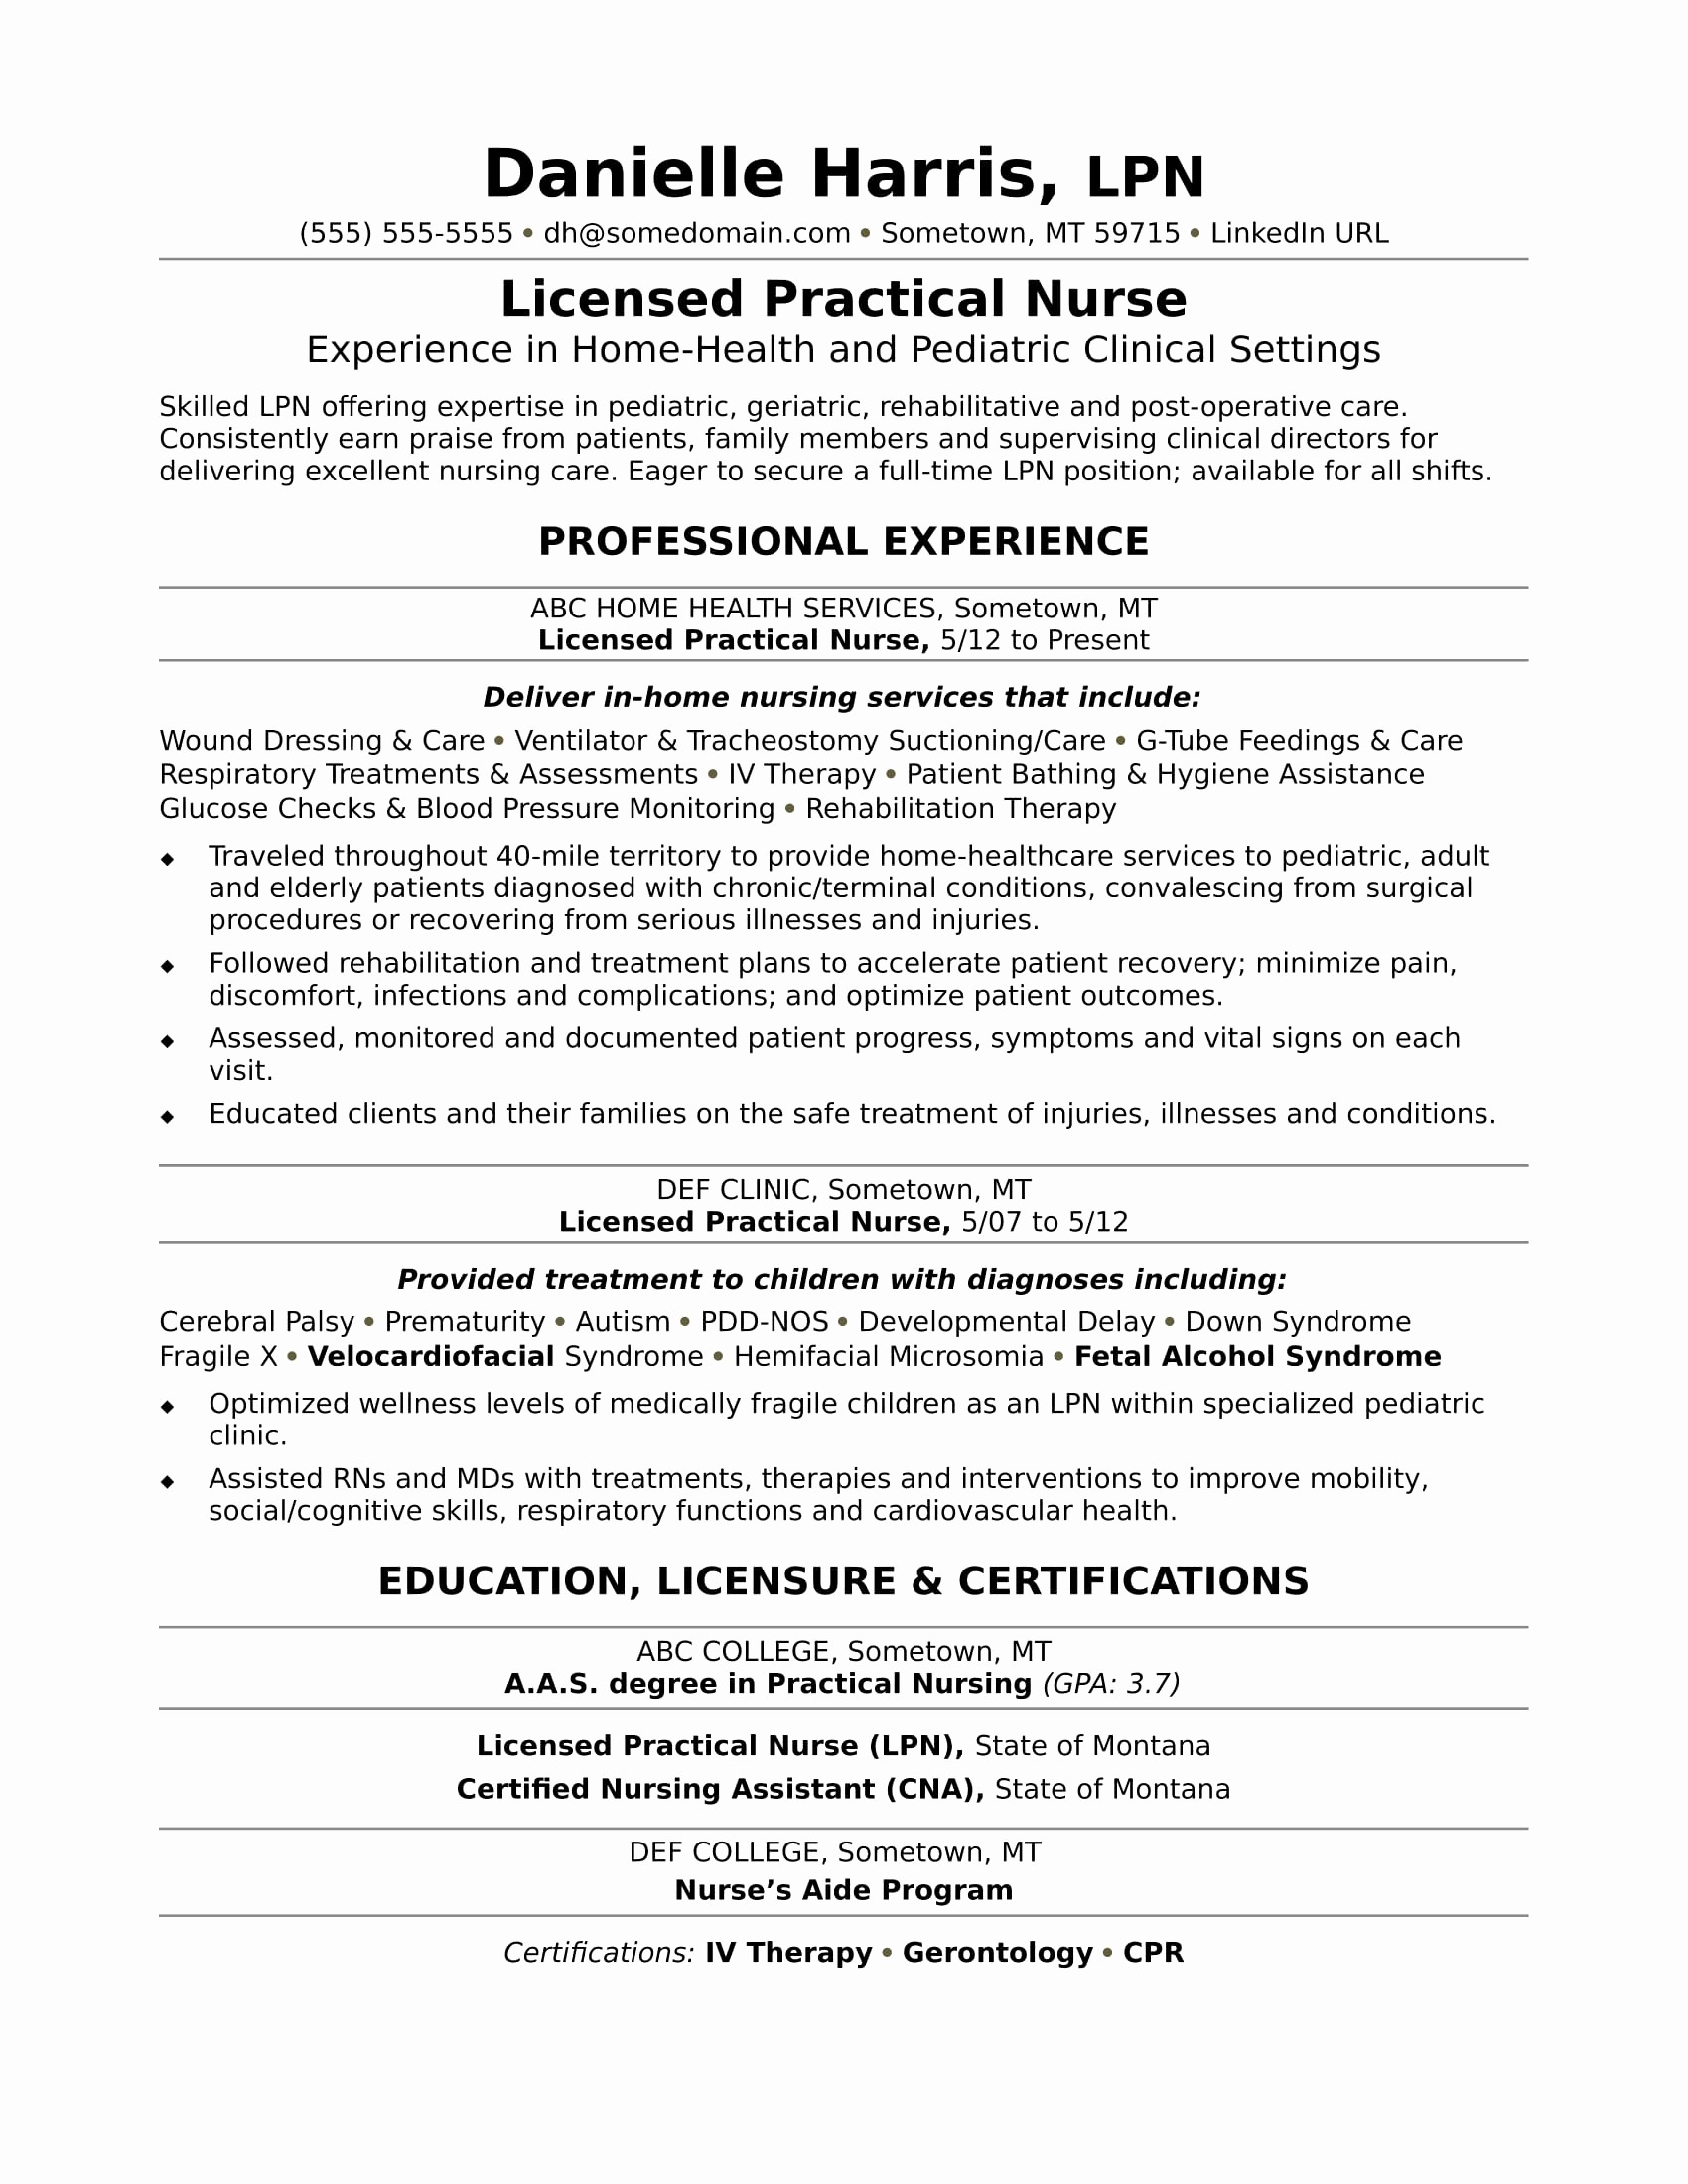 Nursing Resume format - Resume Sample Experience New Experienced Nursing Resume Samples